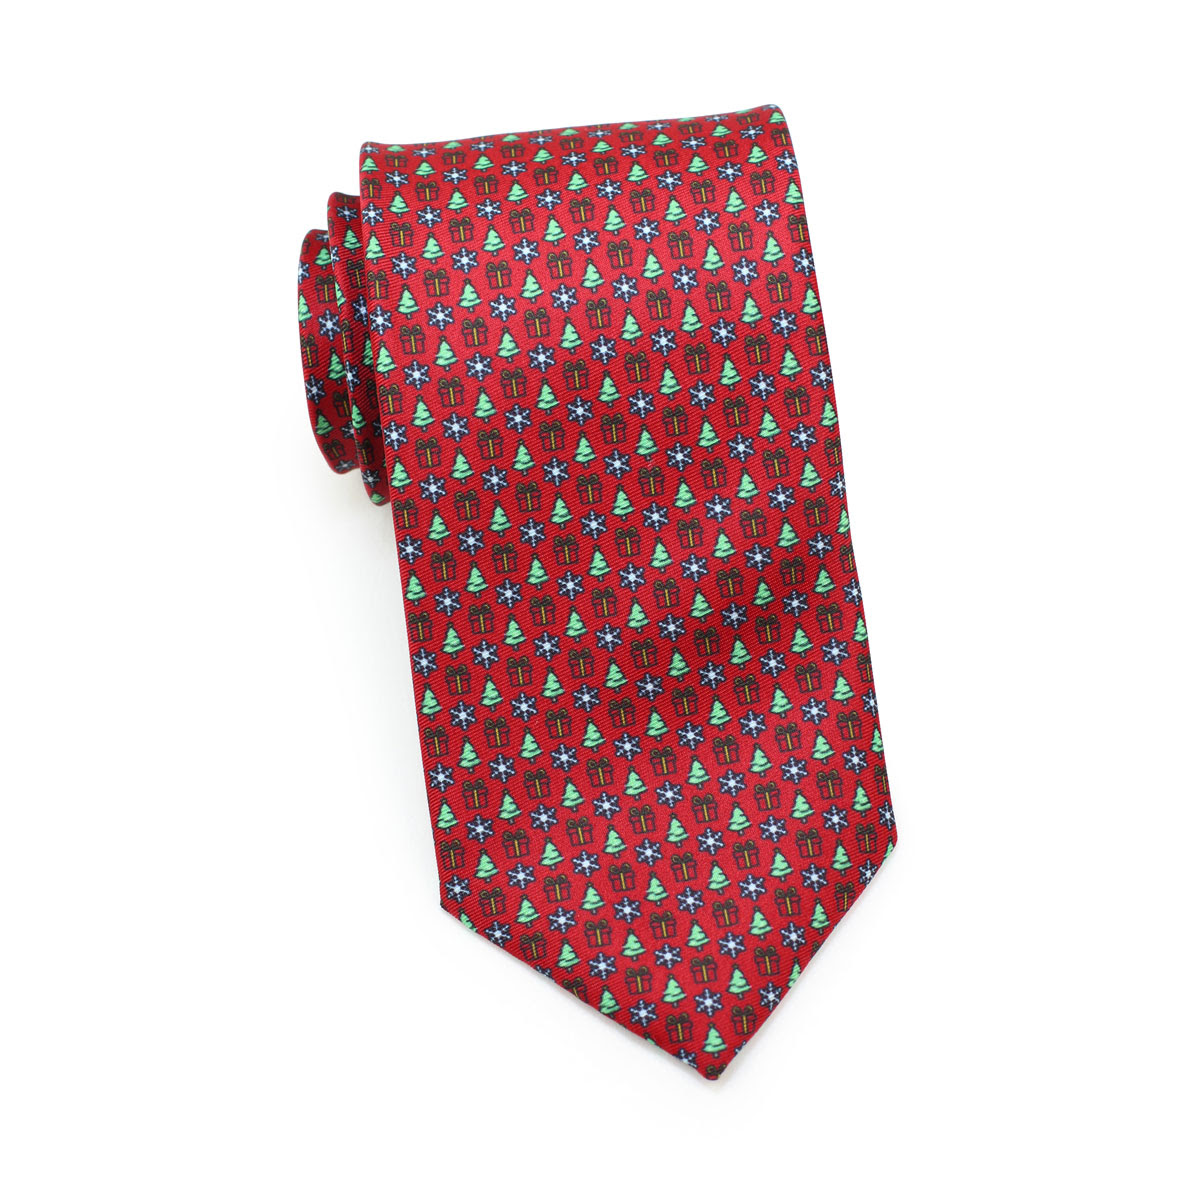 seasons greetings holiday tie in red